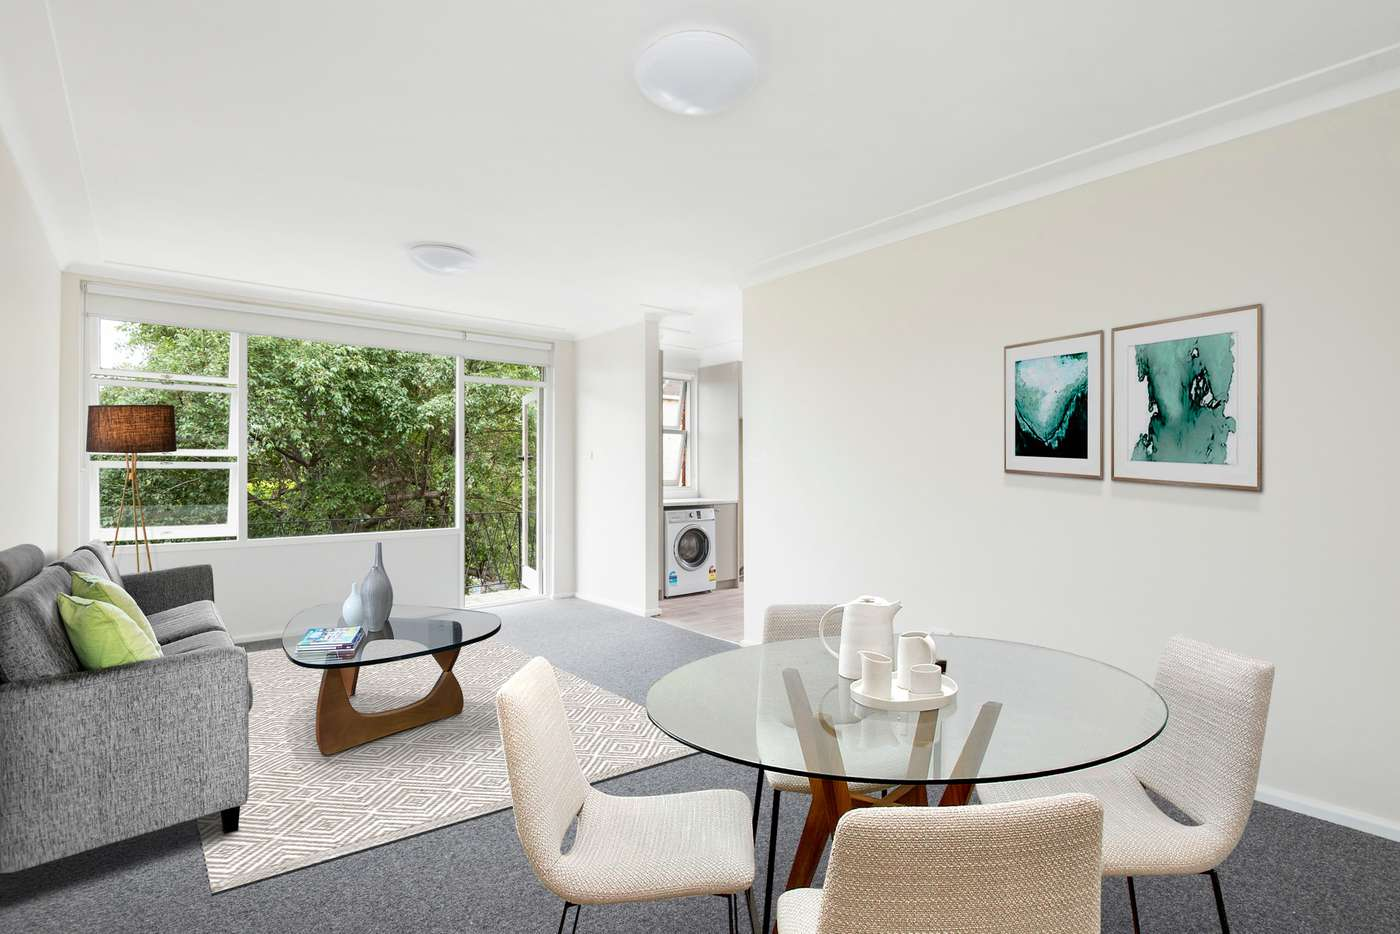 Main view of Homely apartment listing, 11/44 Bennett Street, Cremorne NSW 2090